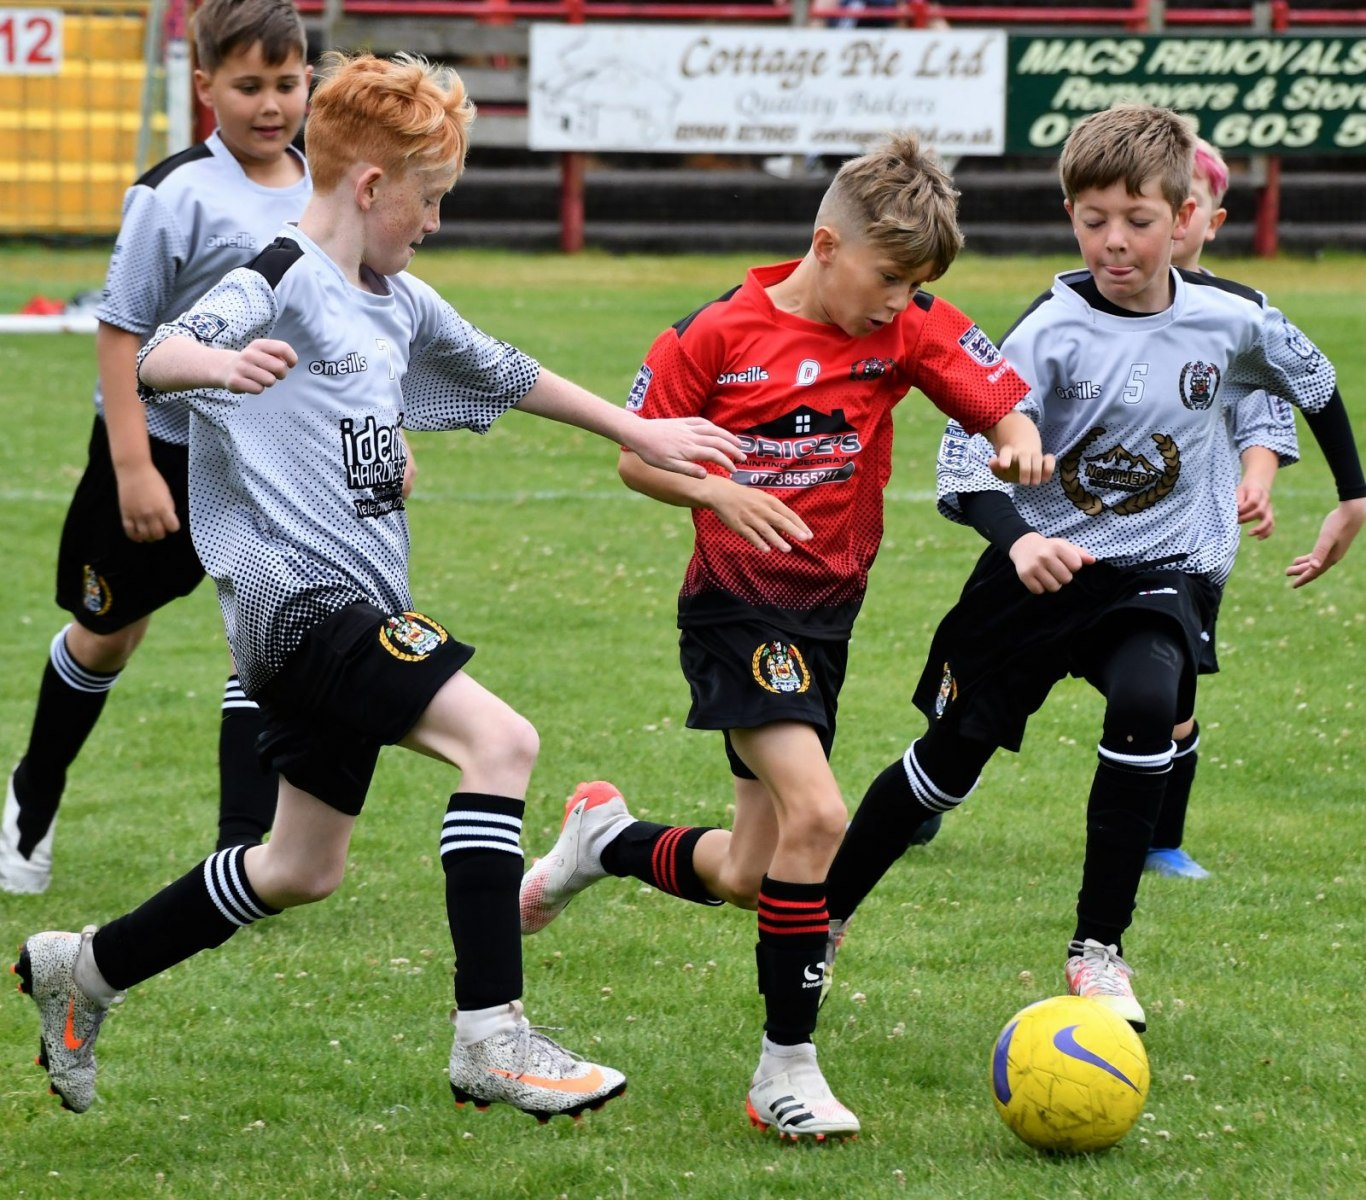 Reds Festival of Football – Juniors in action